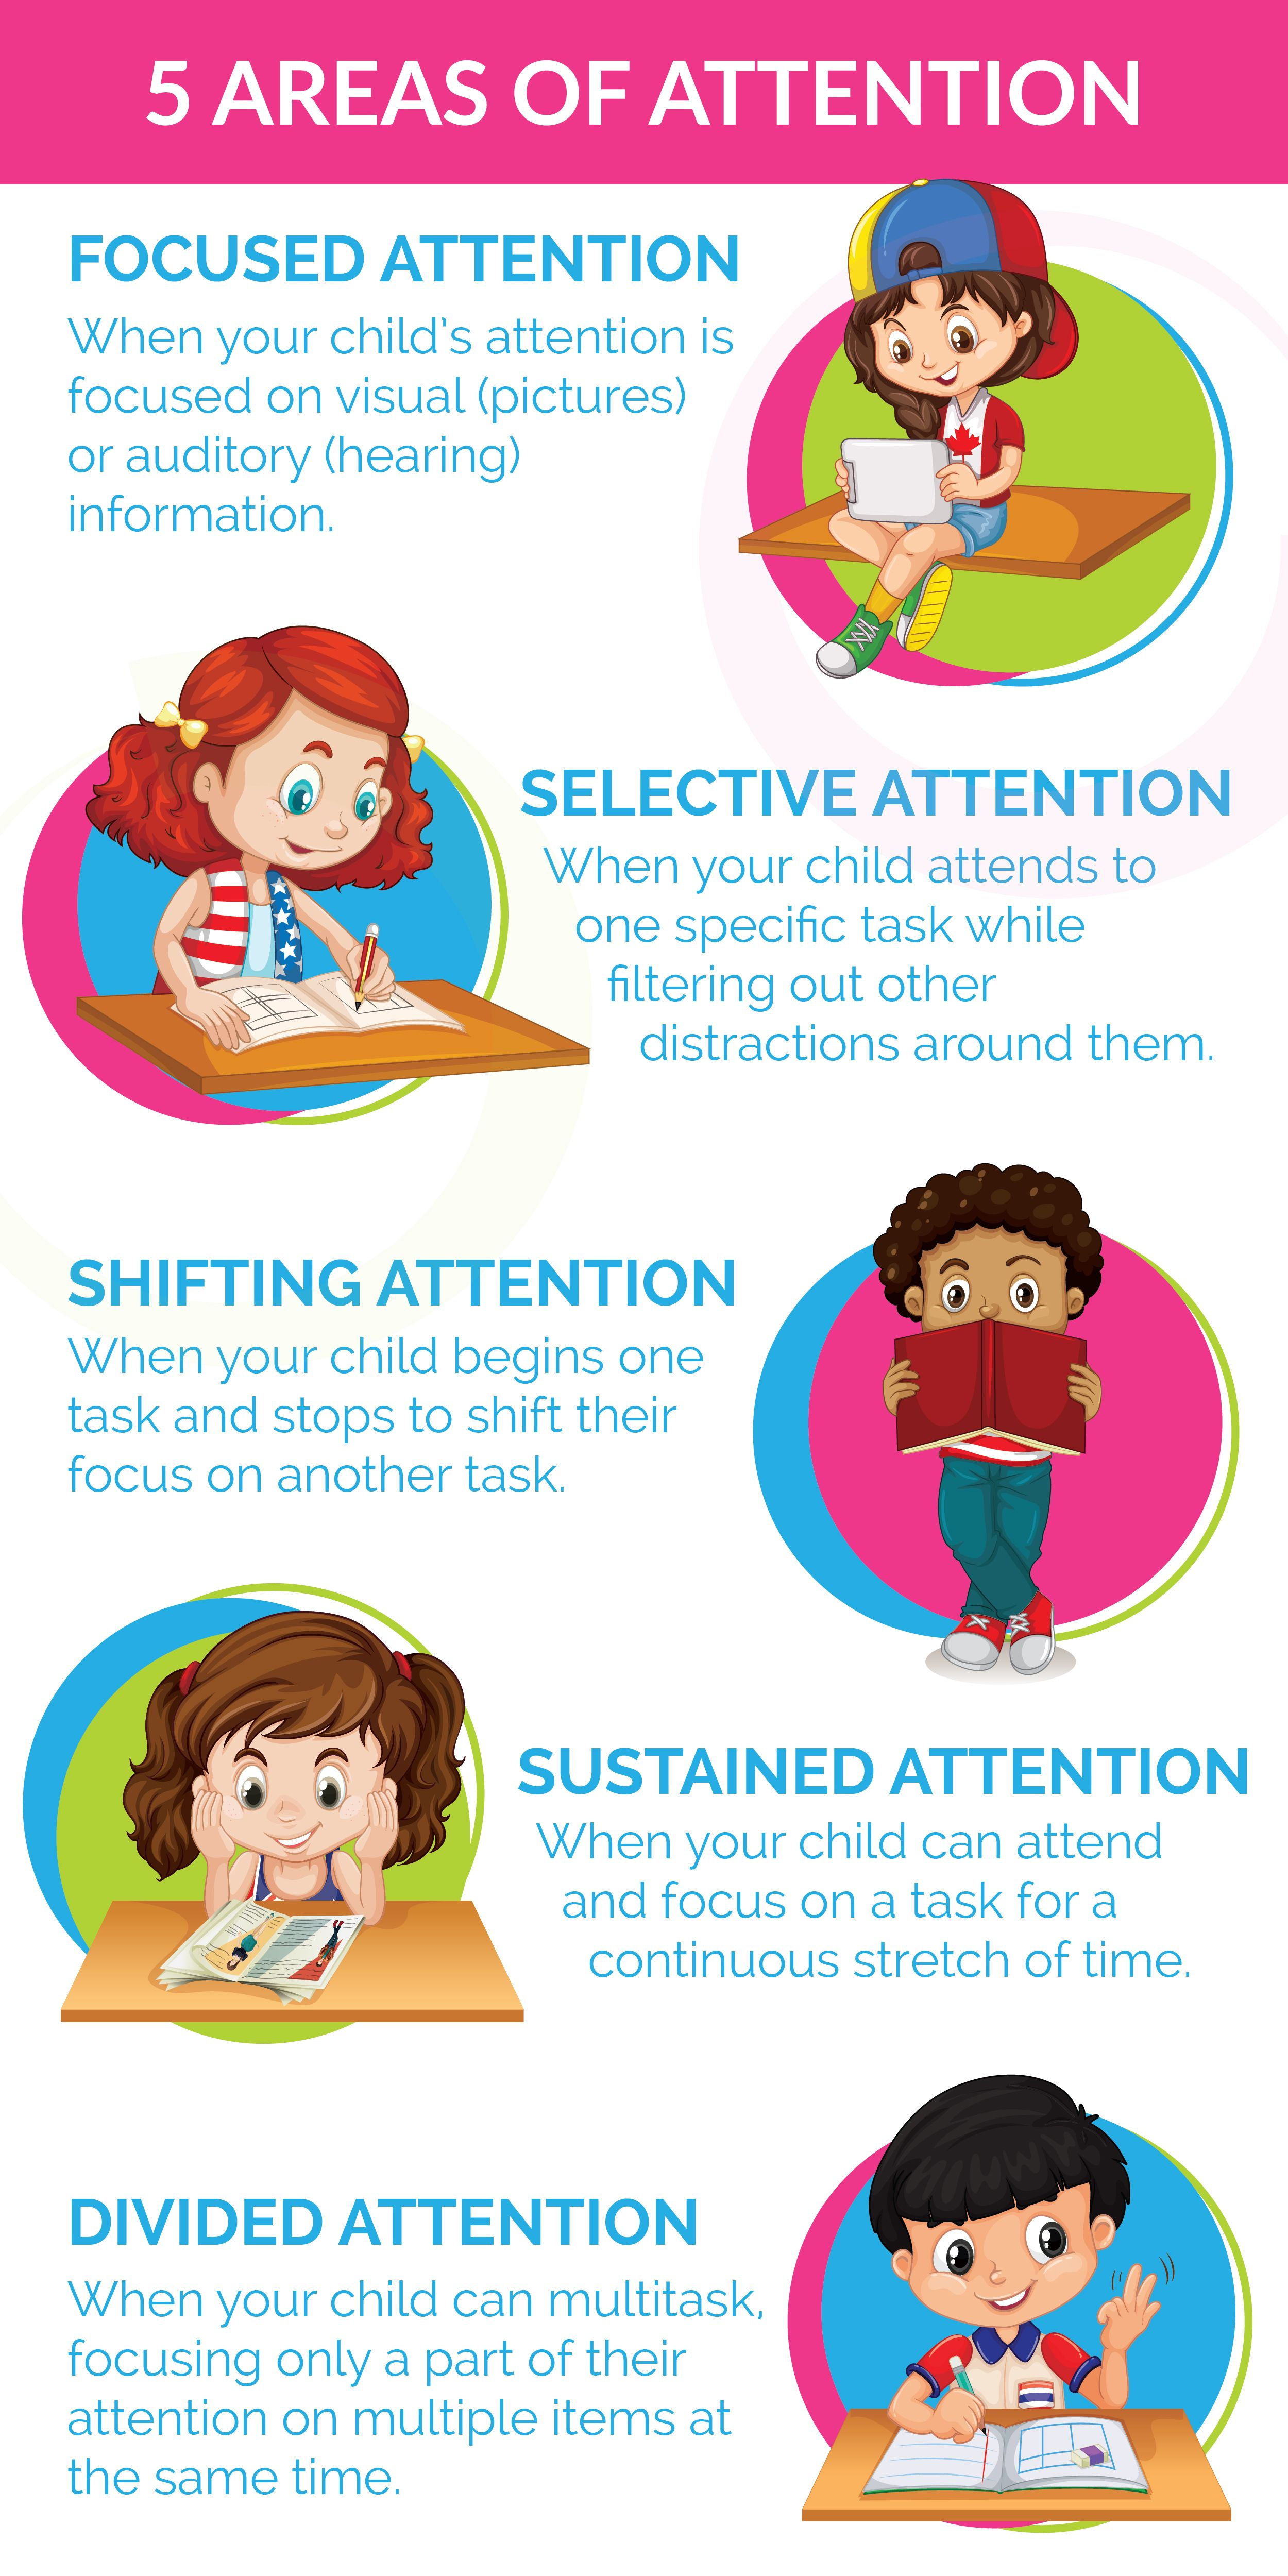 Areas Of Attention Is My Child Developmentally Ready For